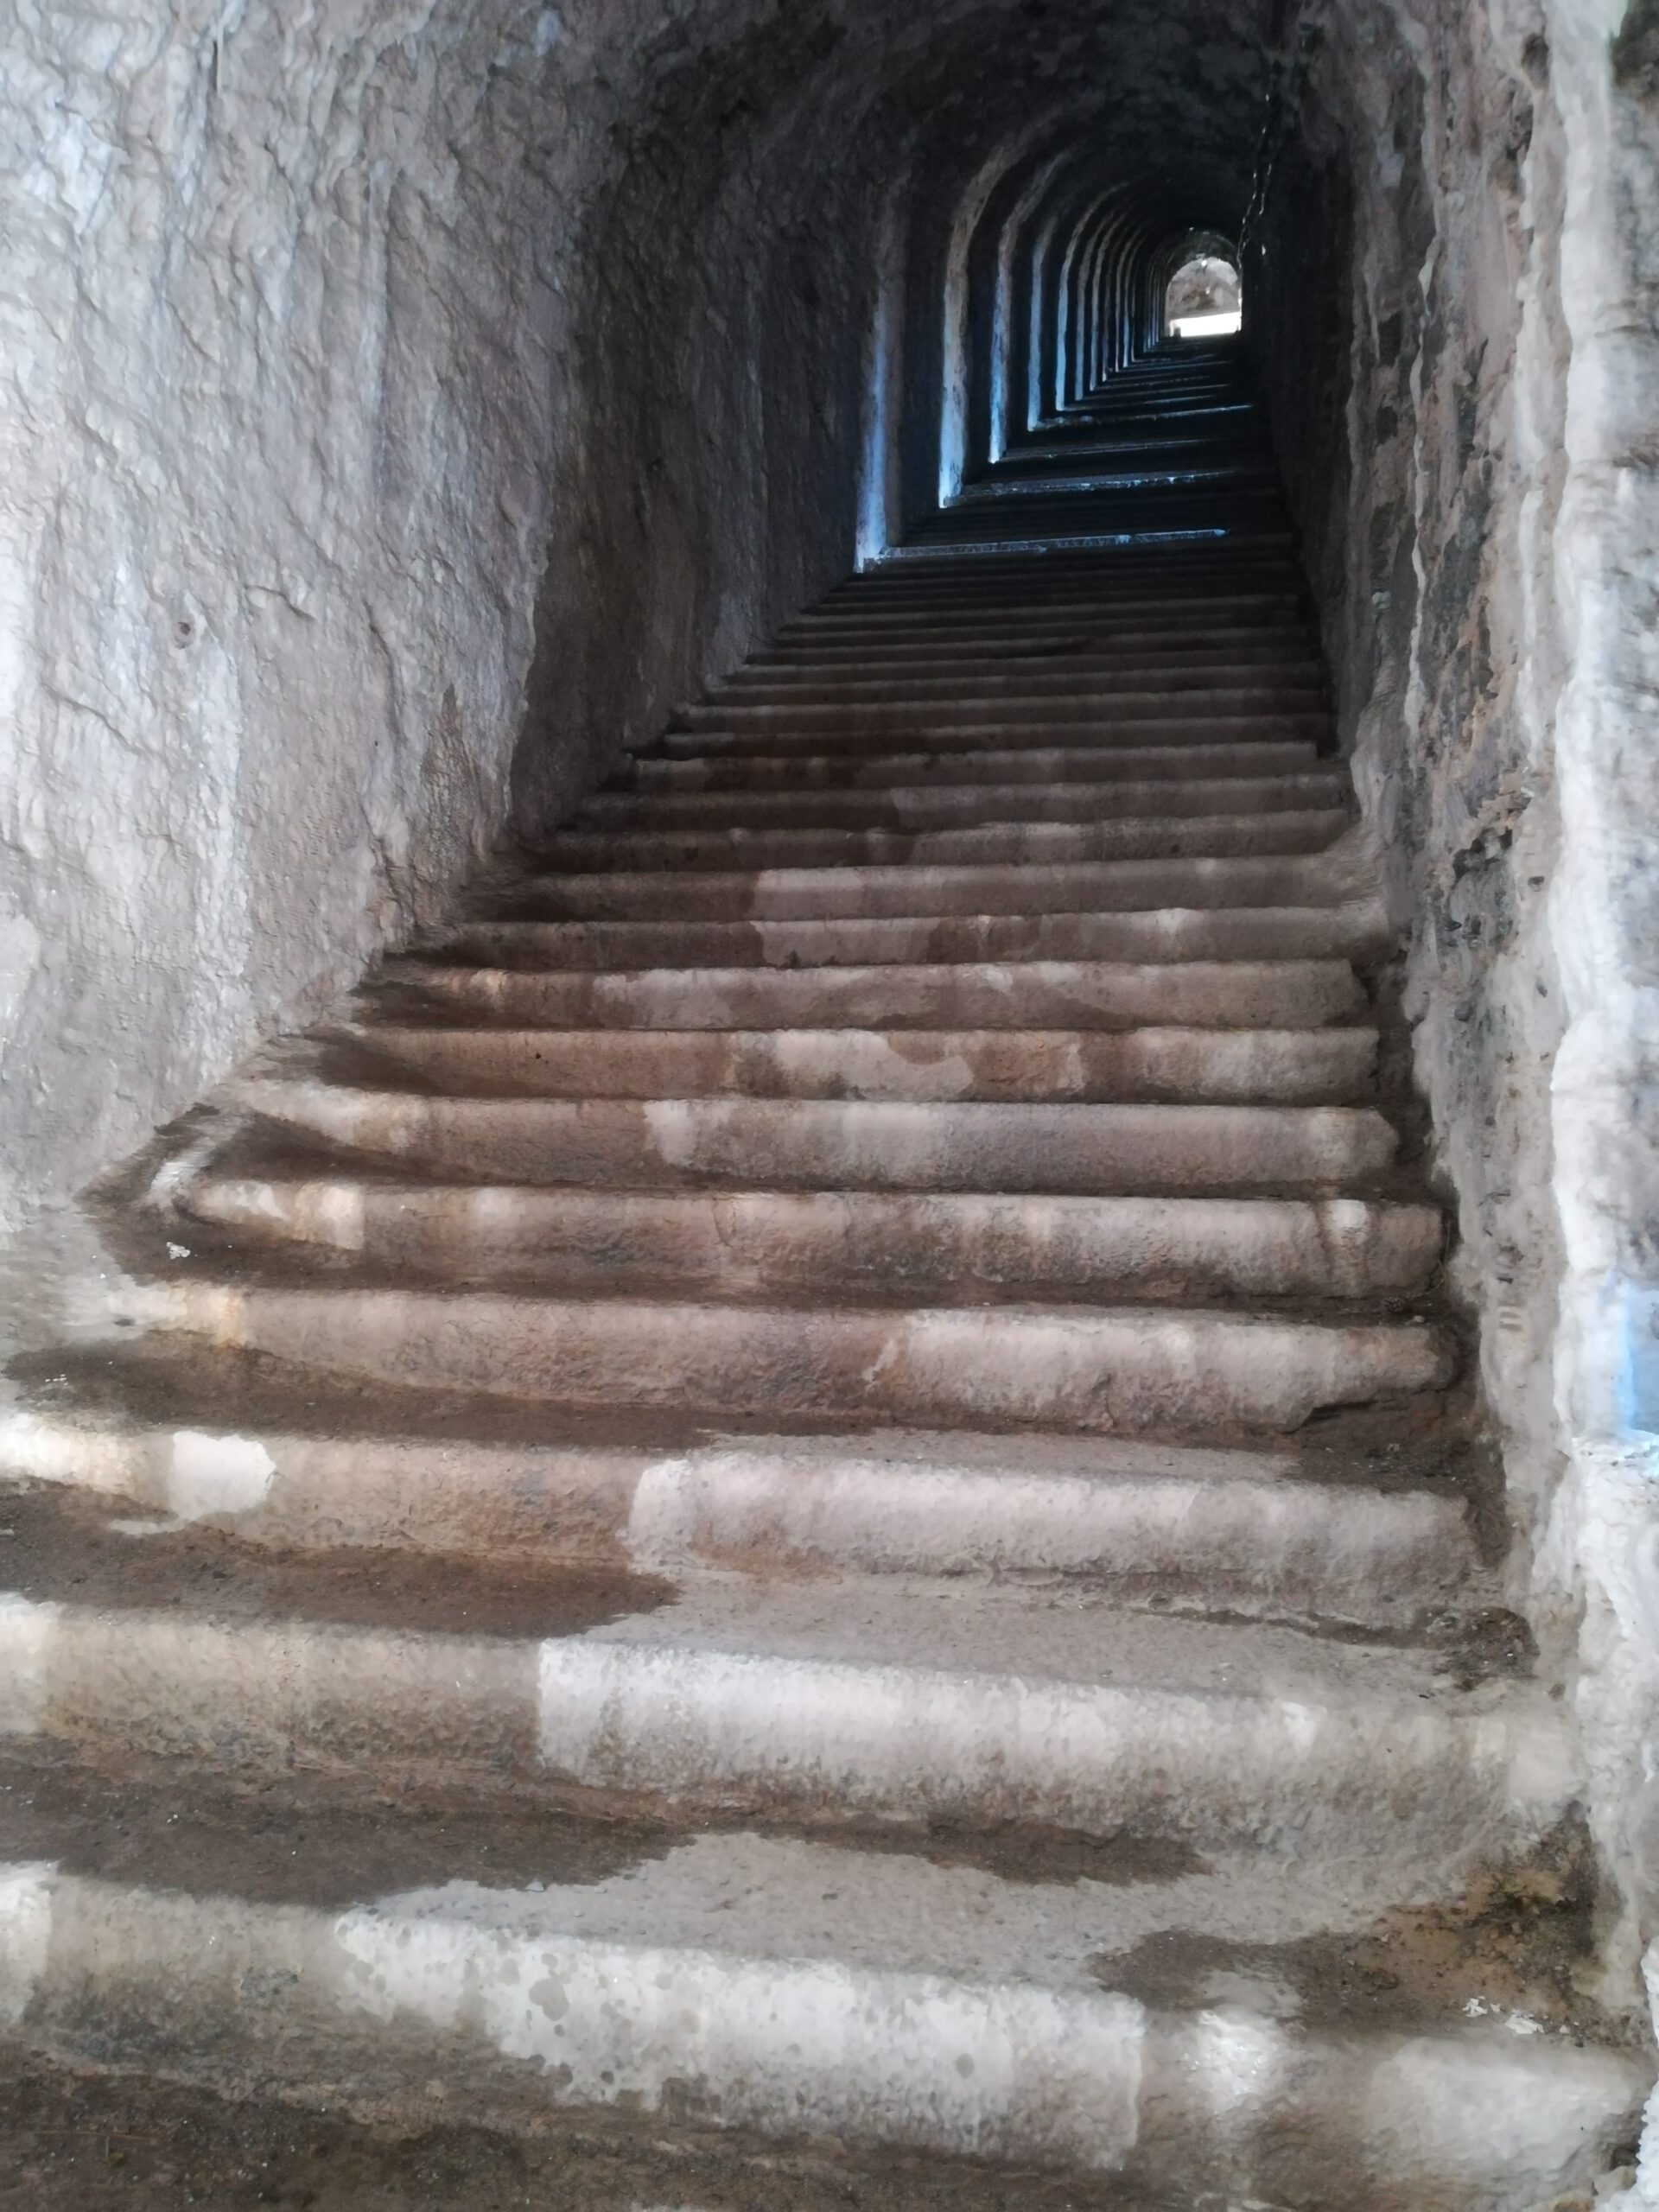 Finestrelle stairs